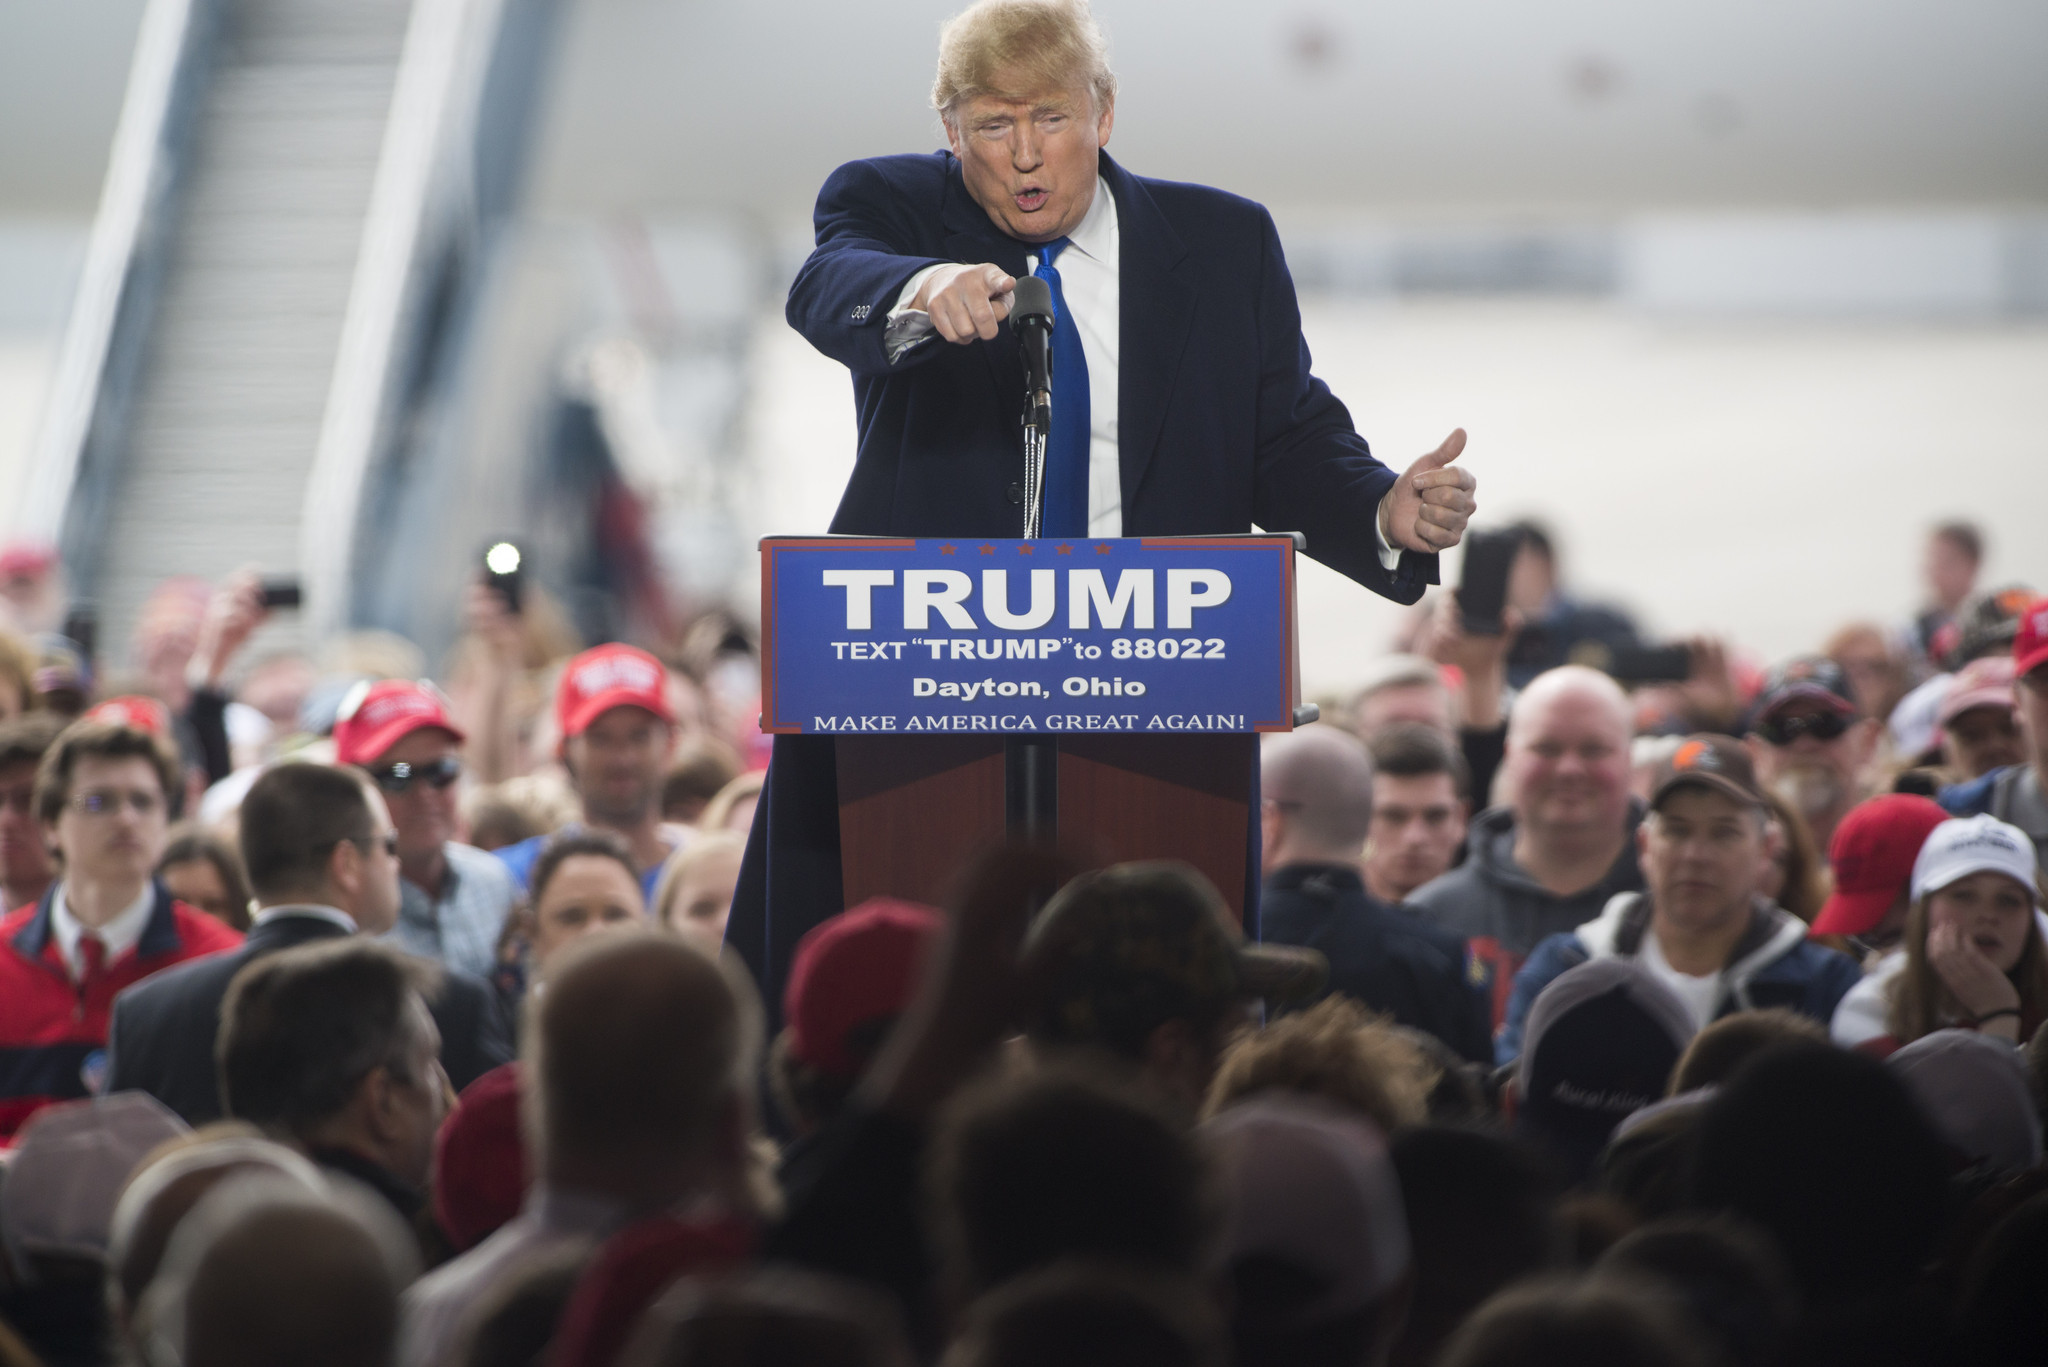 Donald Trump's campaign raises many questions about ethics in government and politics (via LA Times)